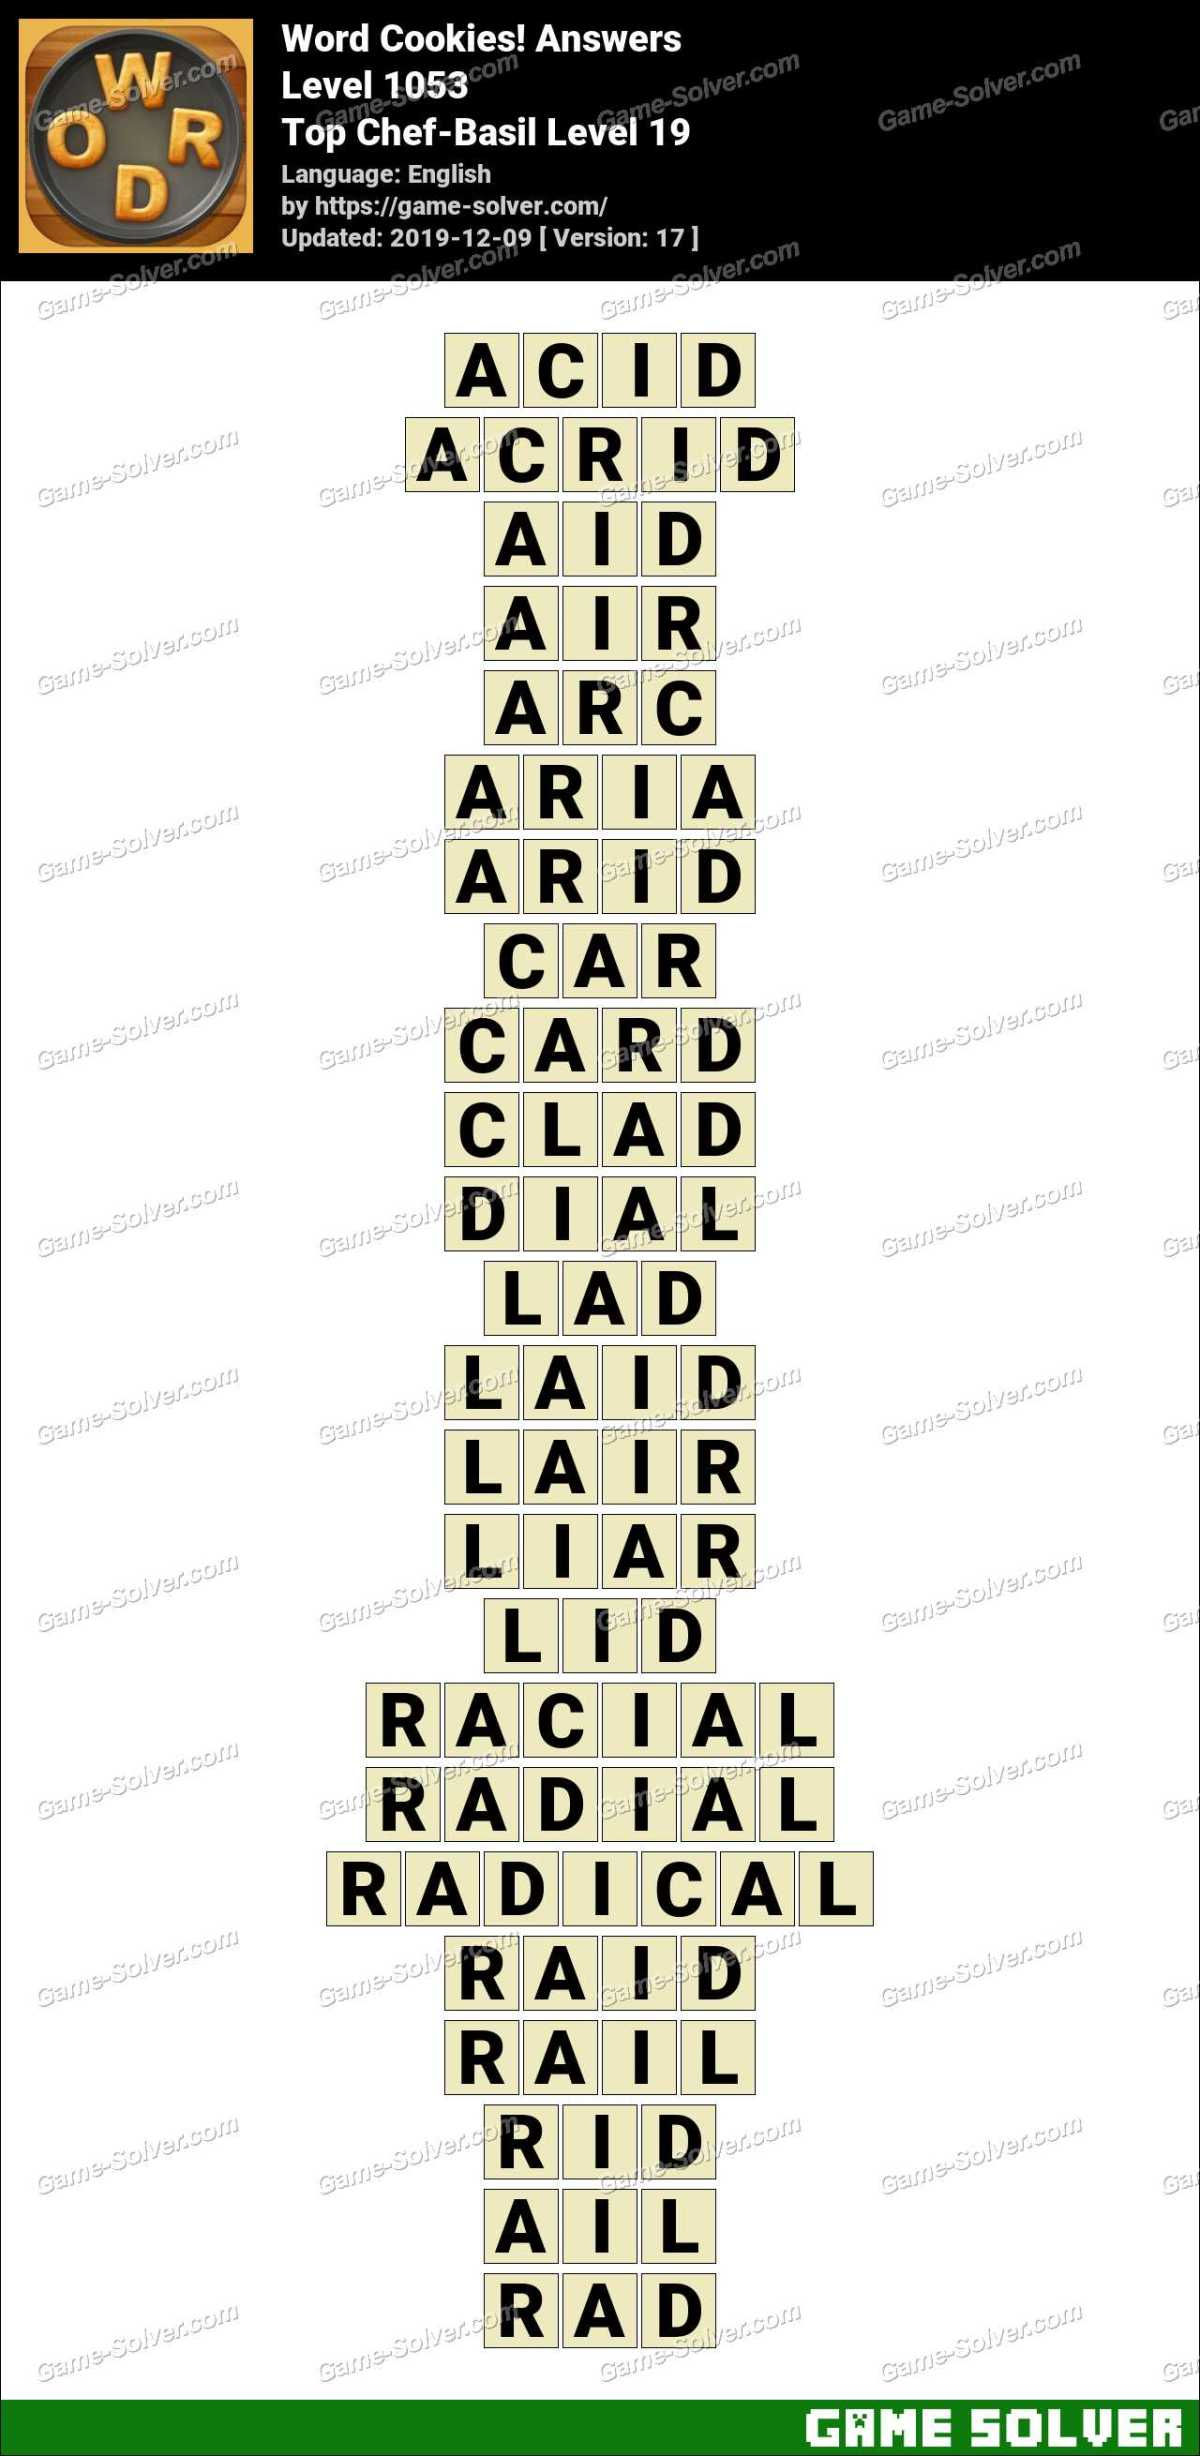 Word Cookies Top Chef-Basil Level 19 Answers